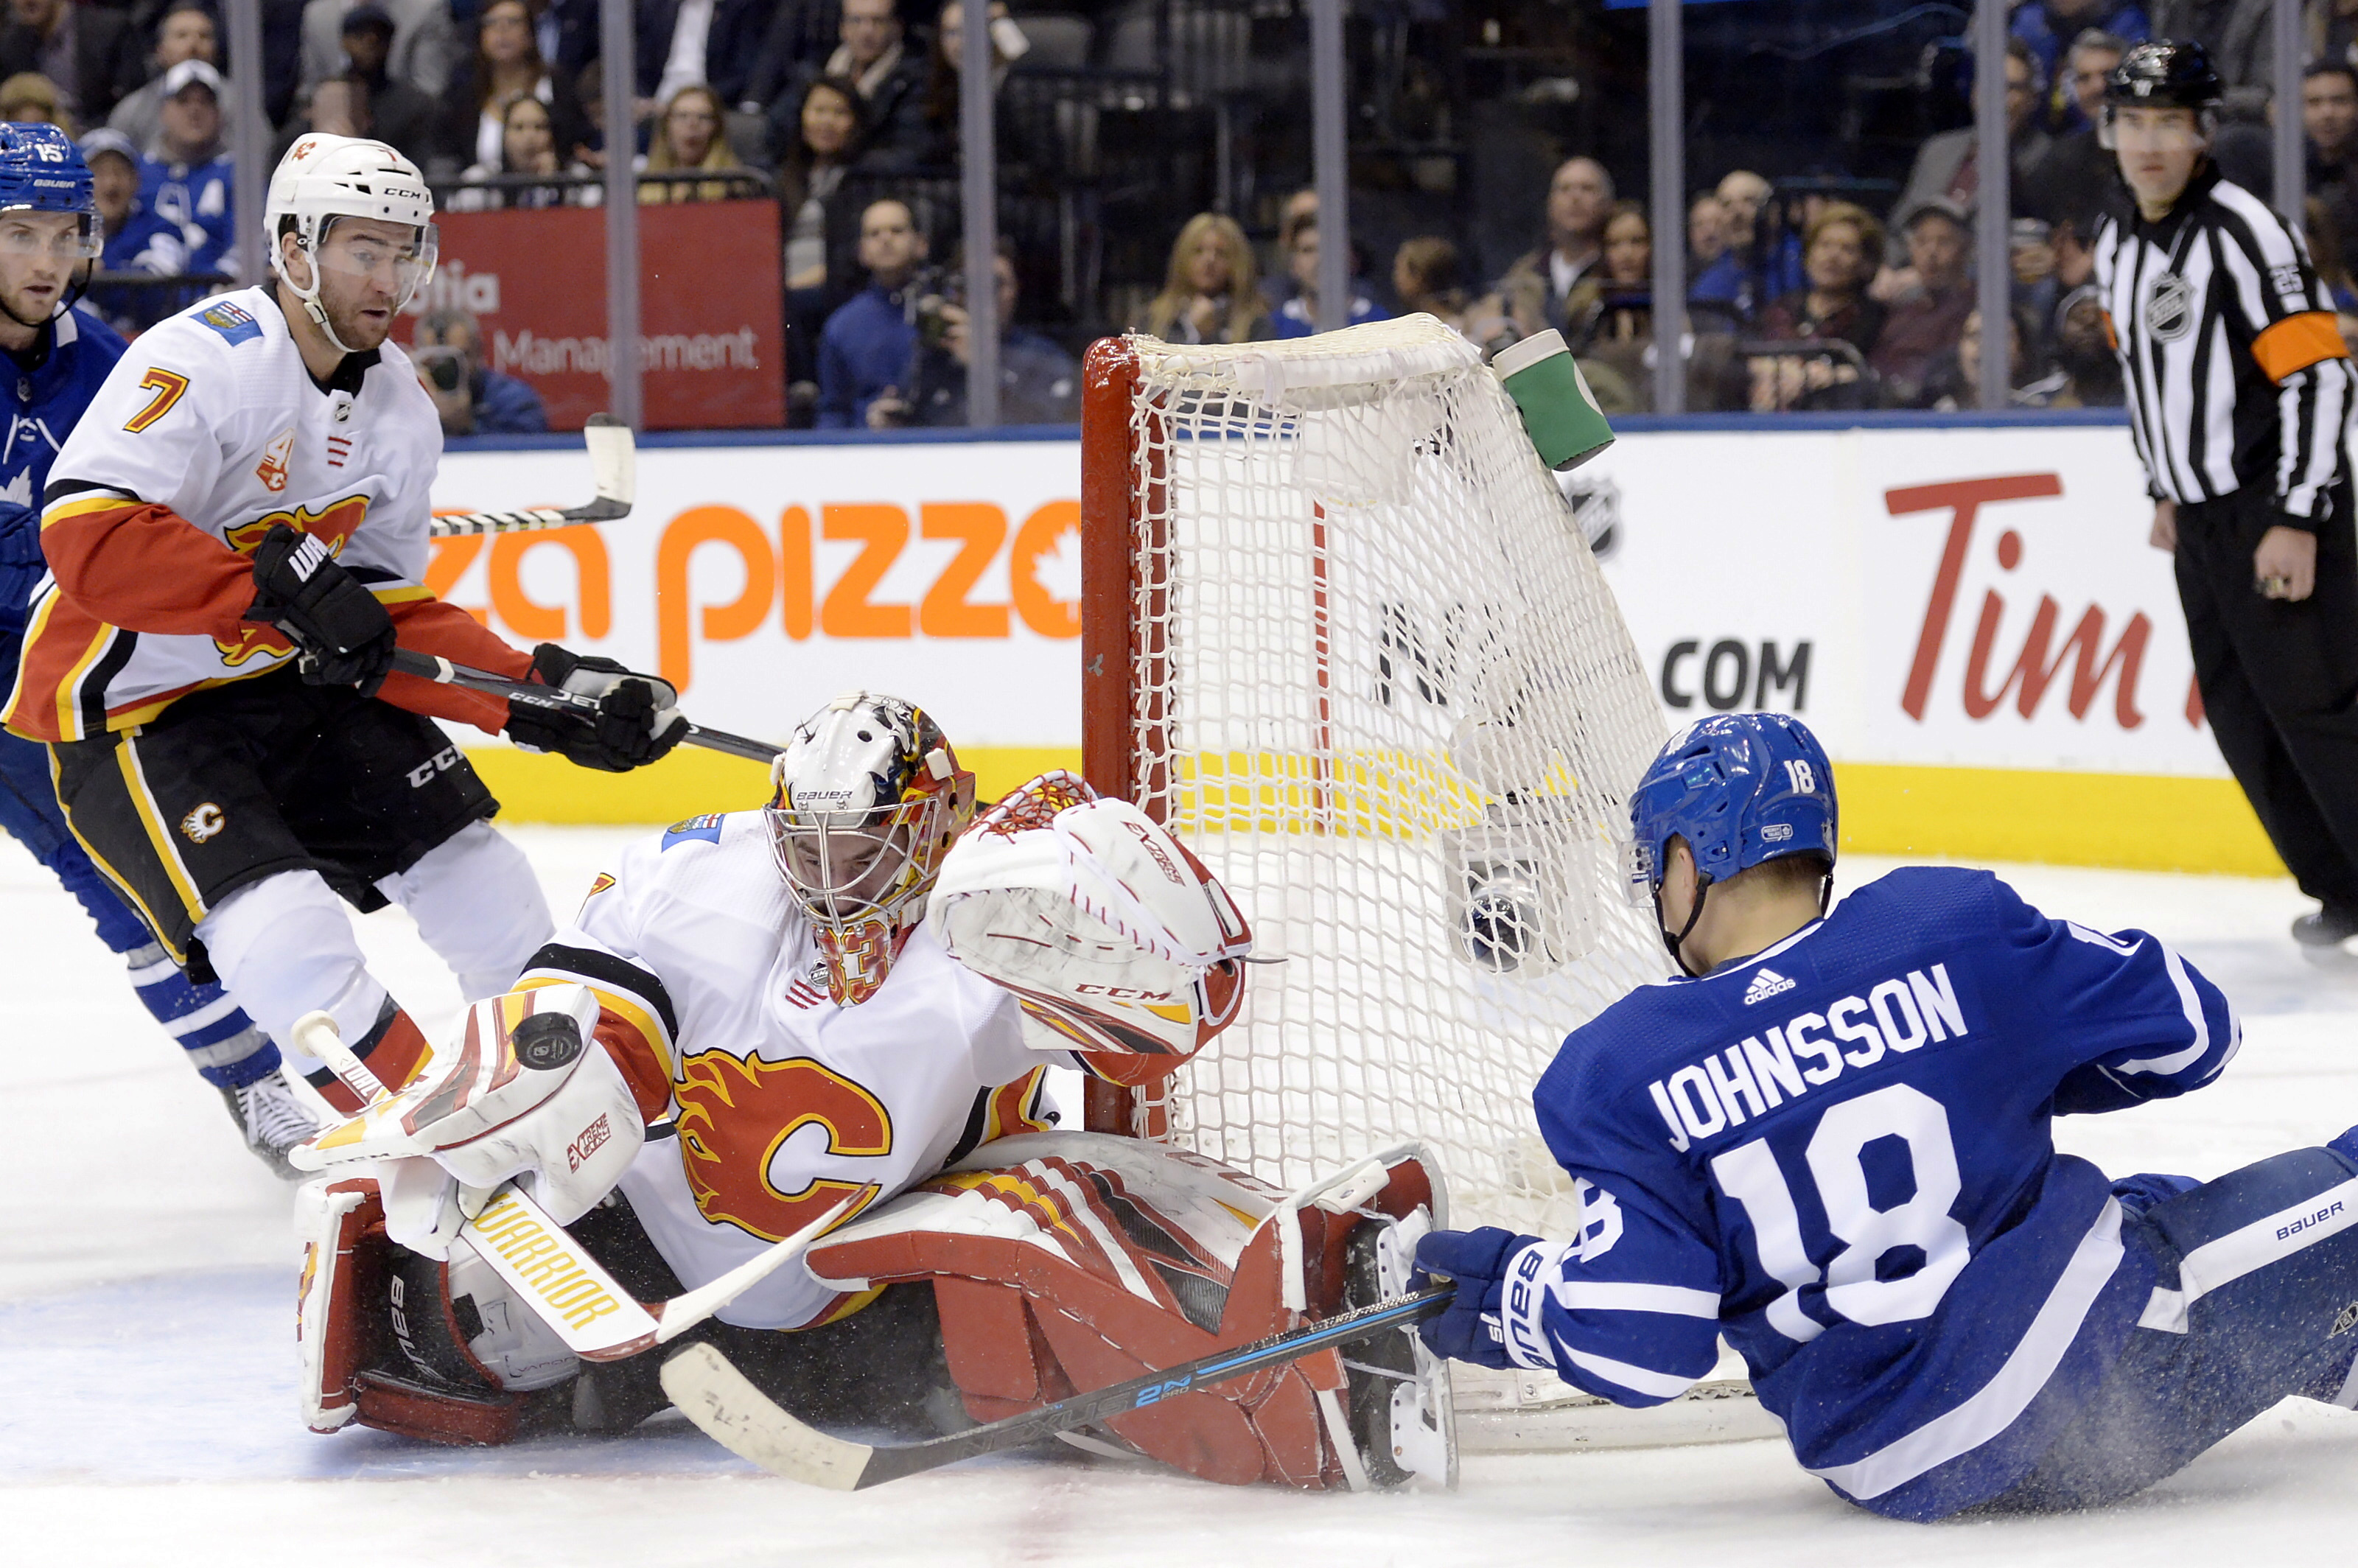 Tkachuk's SO goal lifts Flames past Maple Leafs 2-1